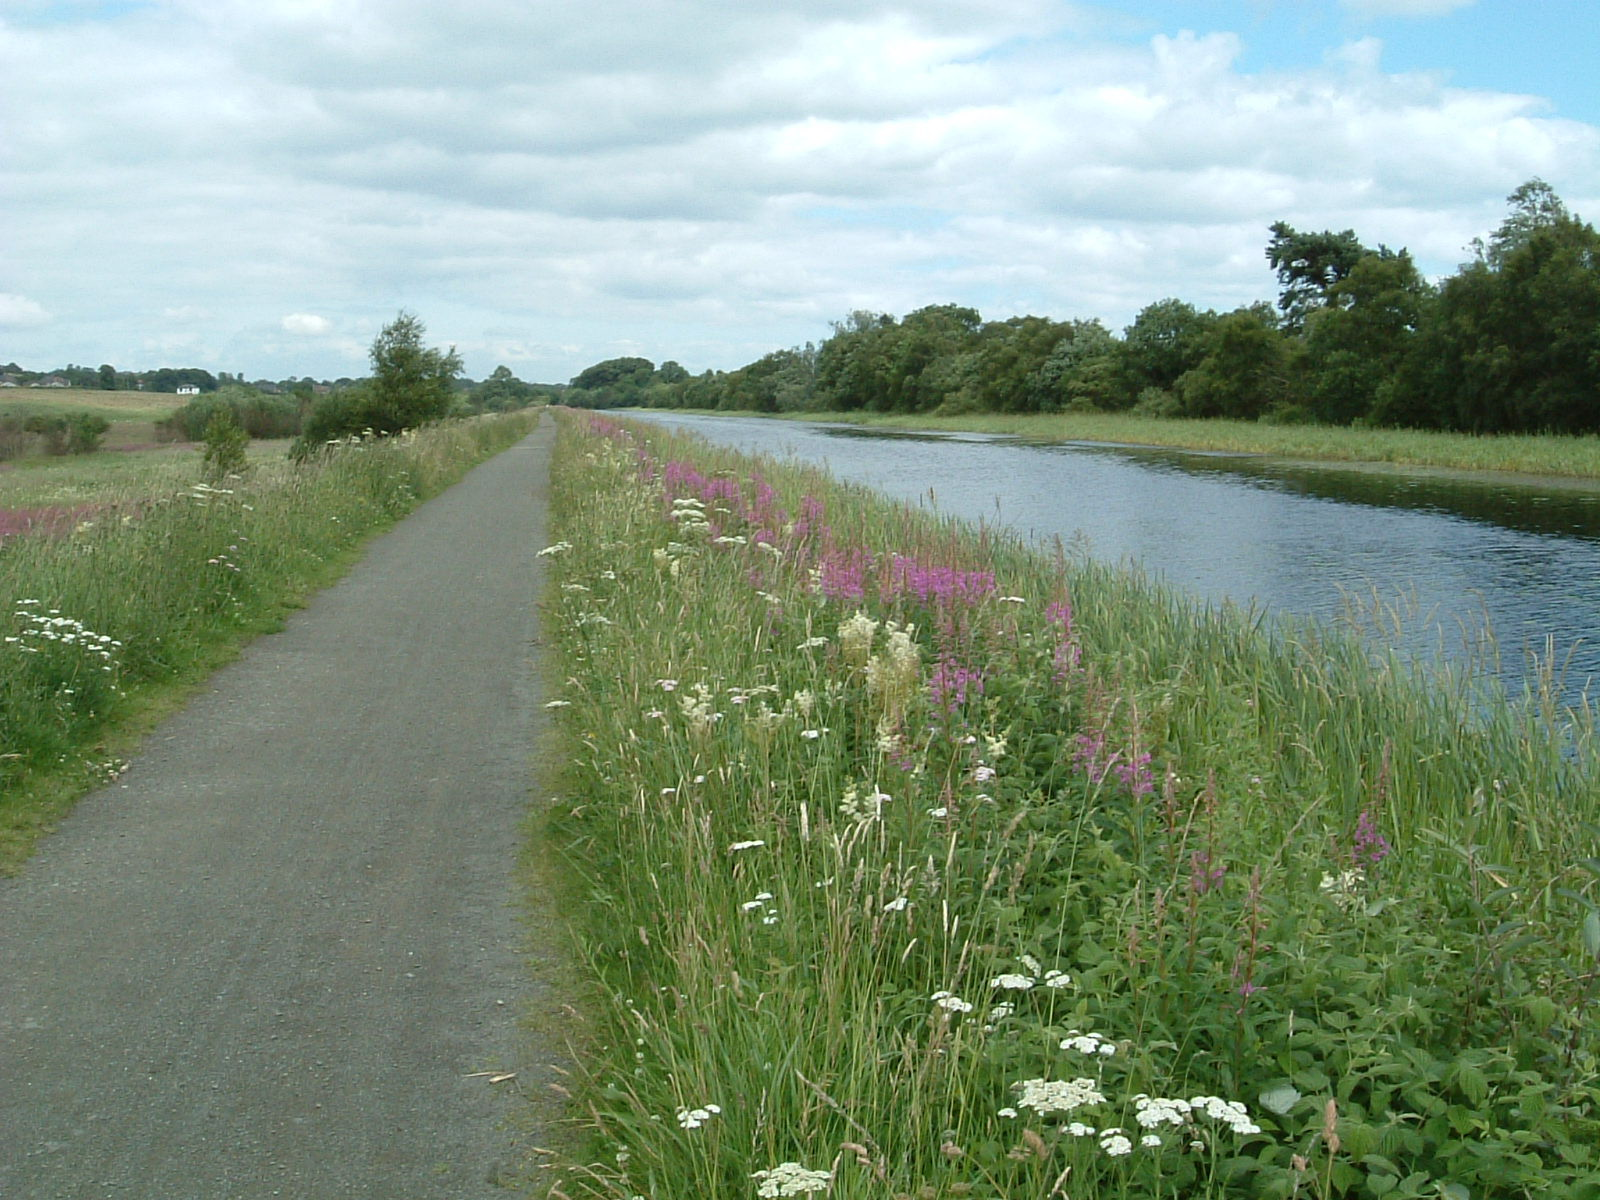 The Forth and Clyde Canal near Kilsyth